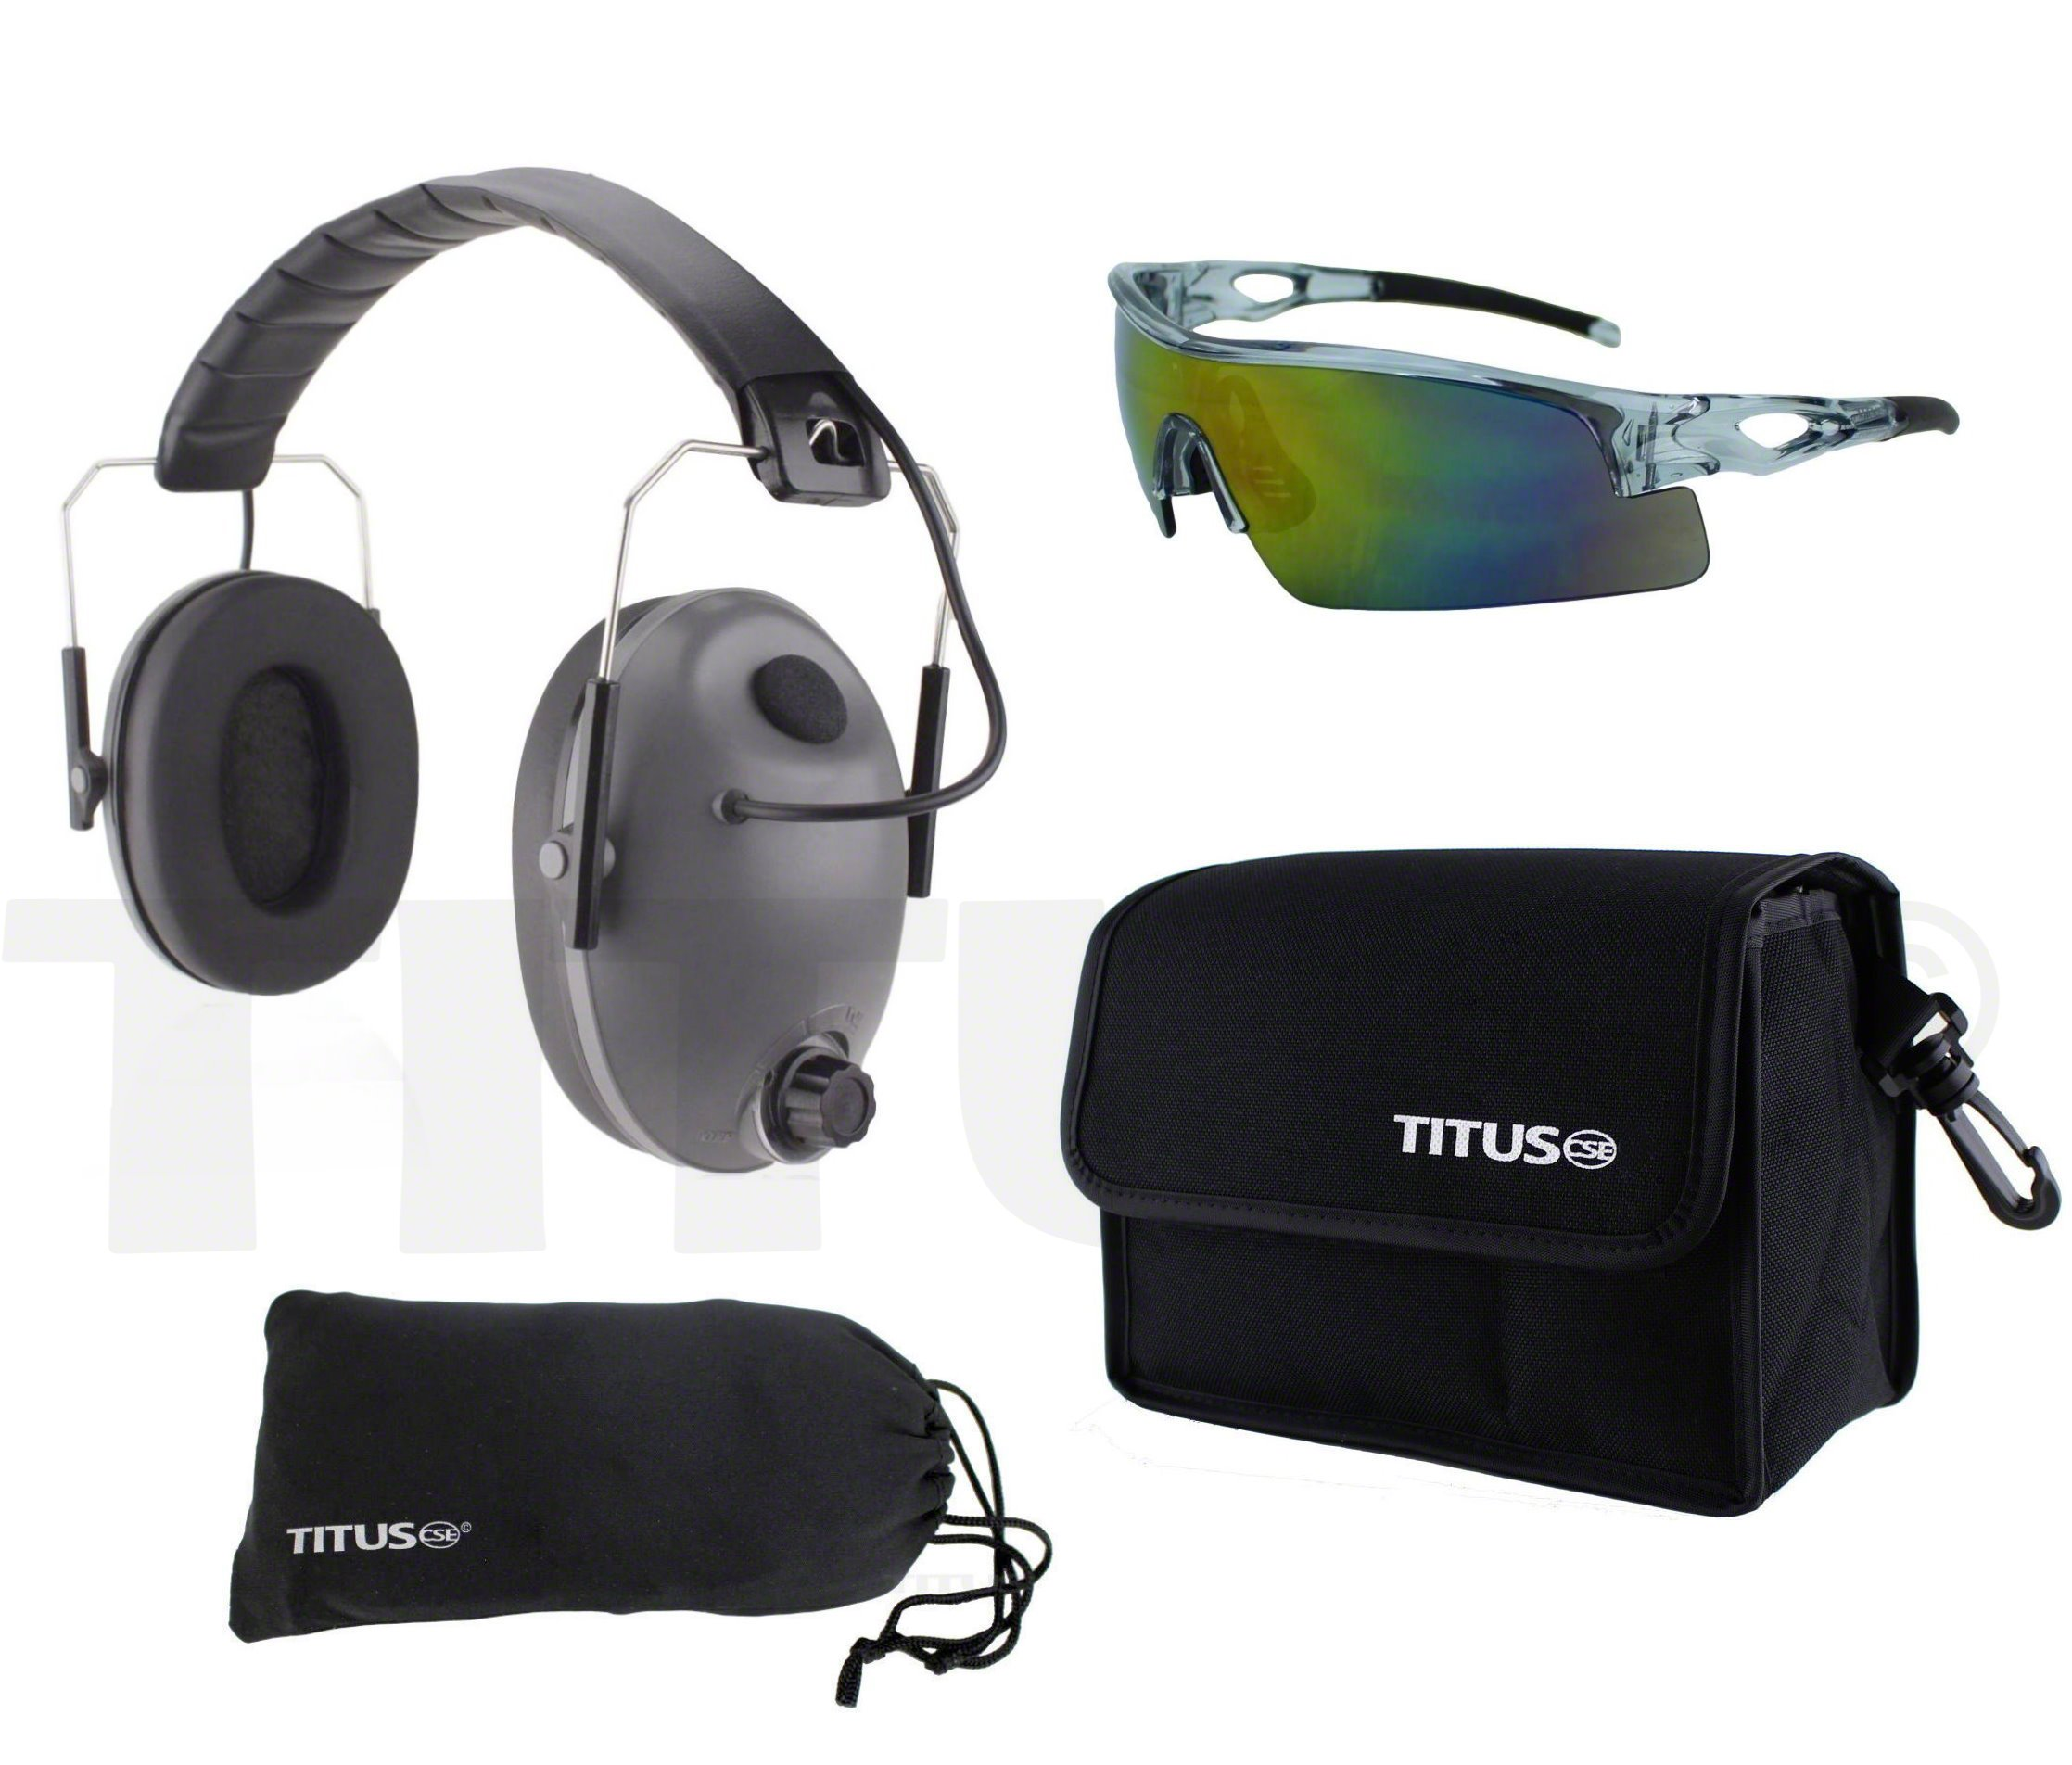 TITUS Top Combos: Safety Earmuffs & Glasses (Grey Electronic - Slim, Z87.1 Full-Spectrum All-Sport)